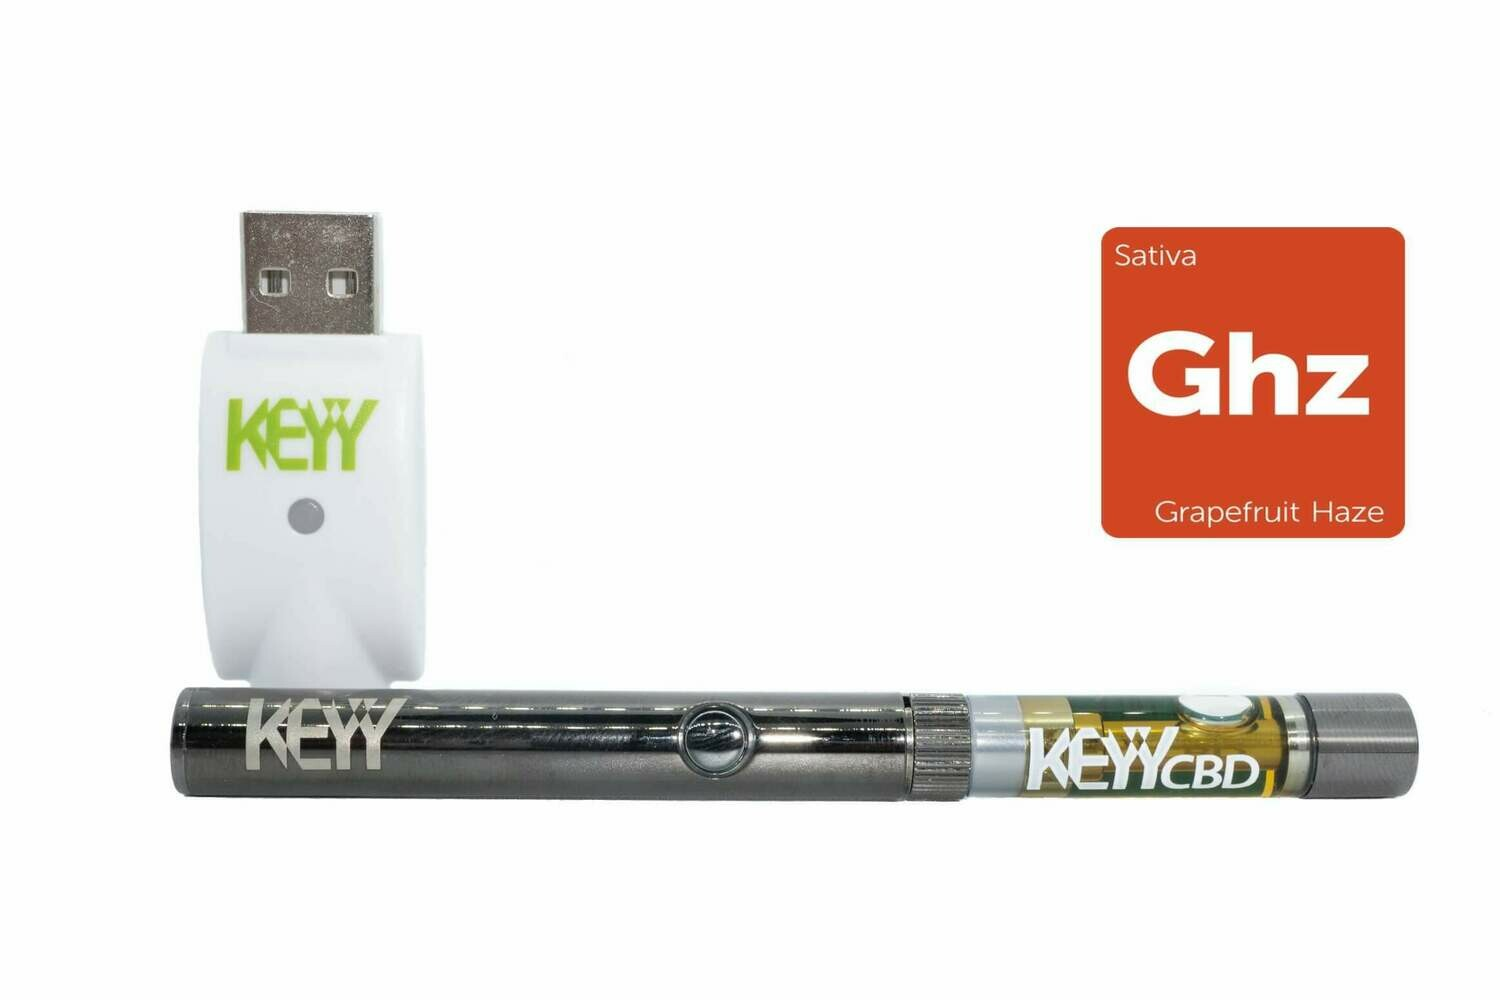 Grapefruit Haze (Sativa) Vape Pen Kit by Keyy